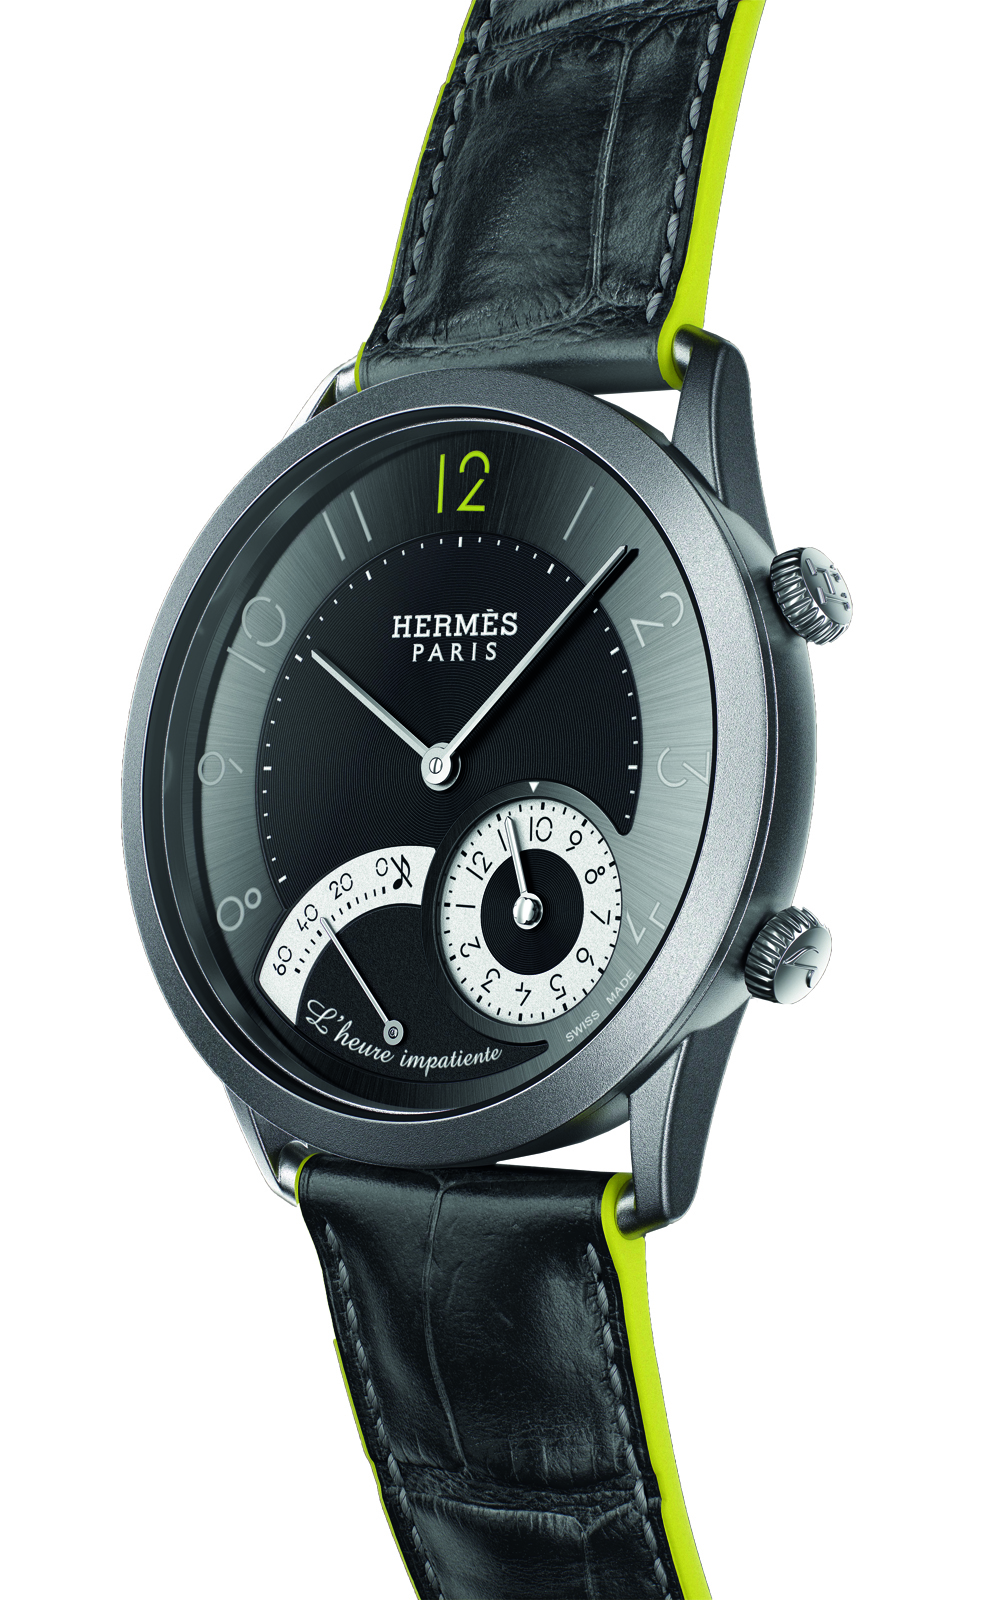 A playful mechanism in this timepiece marks an event within a 12-hour period and provides a visual countdown from 60 minutes, alerting the wearer with the sweet chimes of an internal alarm. (Photo: Courtesy of Hermes)